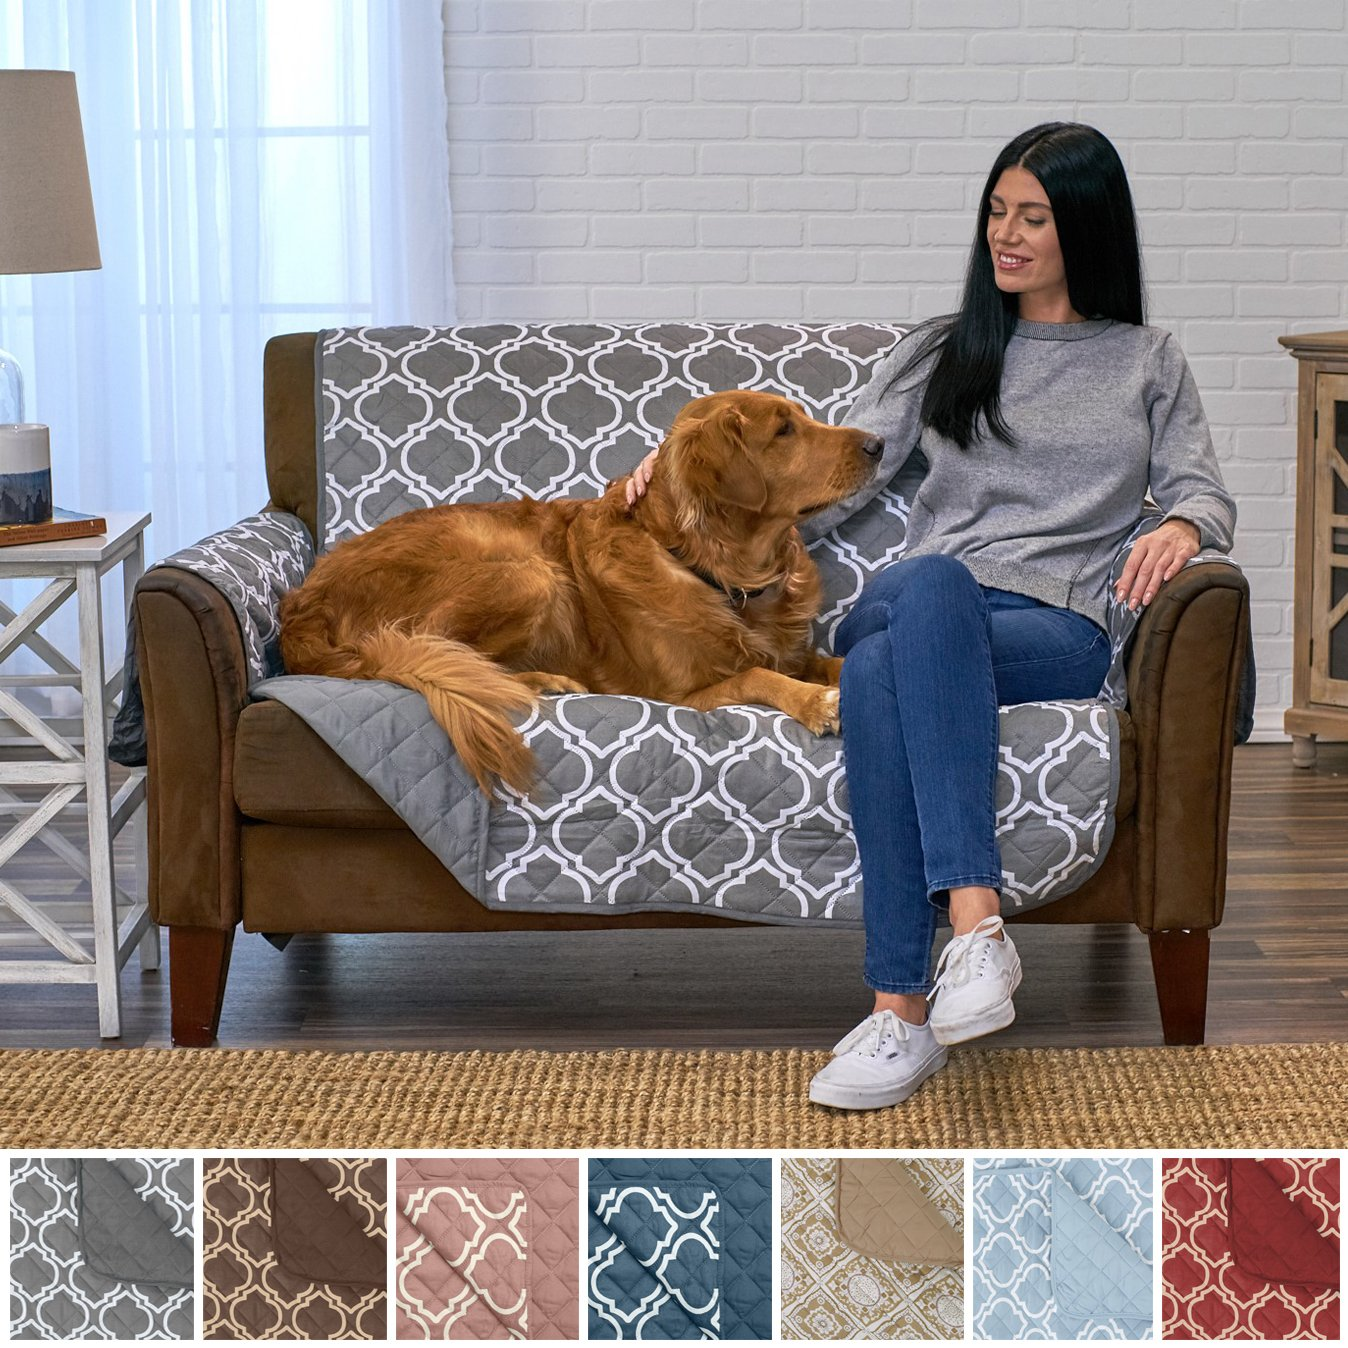 Home Fashion Designs Adalyn Collection Deluxe Reversible Quilted Furniture Protector. Beautiful Print on One Side/Solid Color on the Other for Two Fresh Looks. By Brand. (Loveseat, Charcoal)